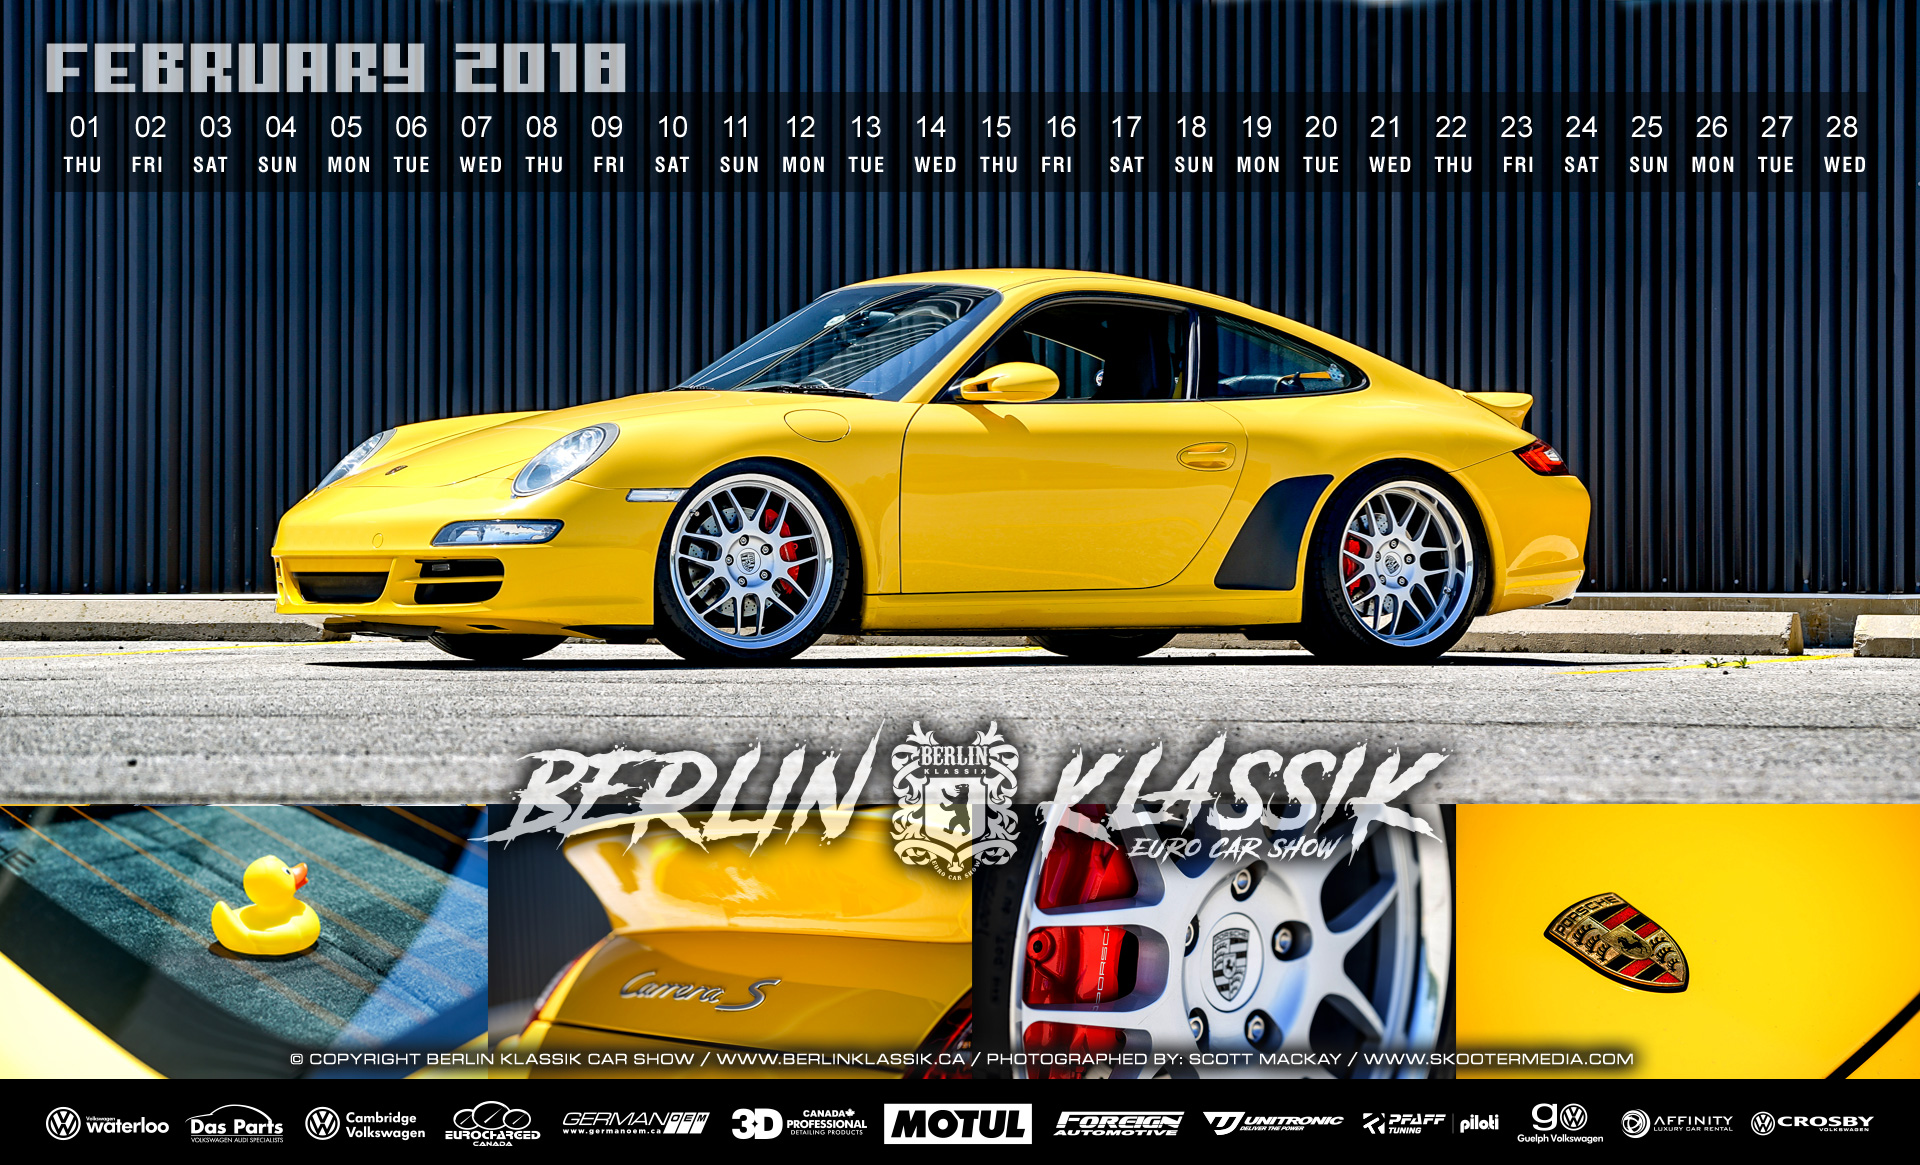 BERLIN Klassik BERLIN KLASSIK Calendar Photoshoot Download - Car show calendar